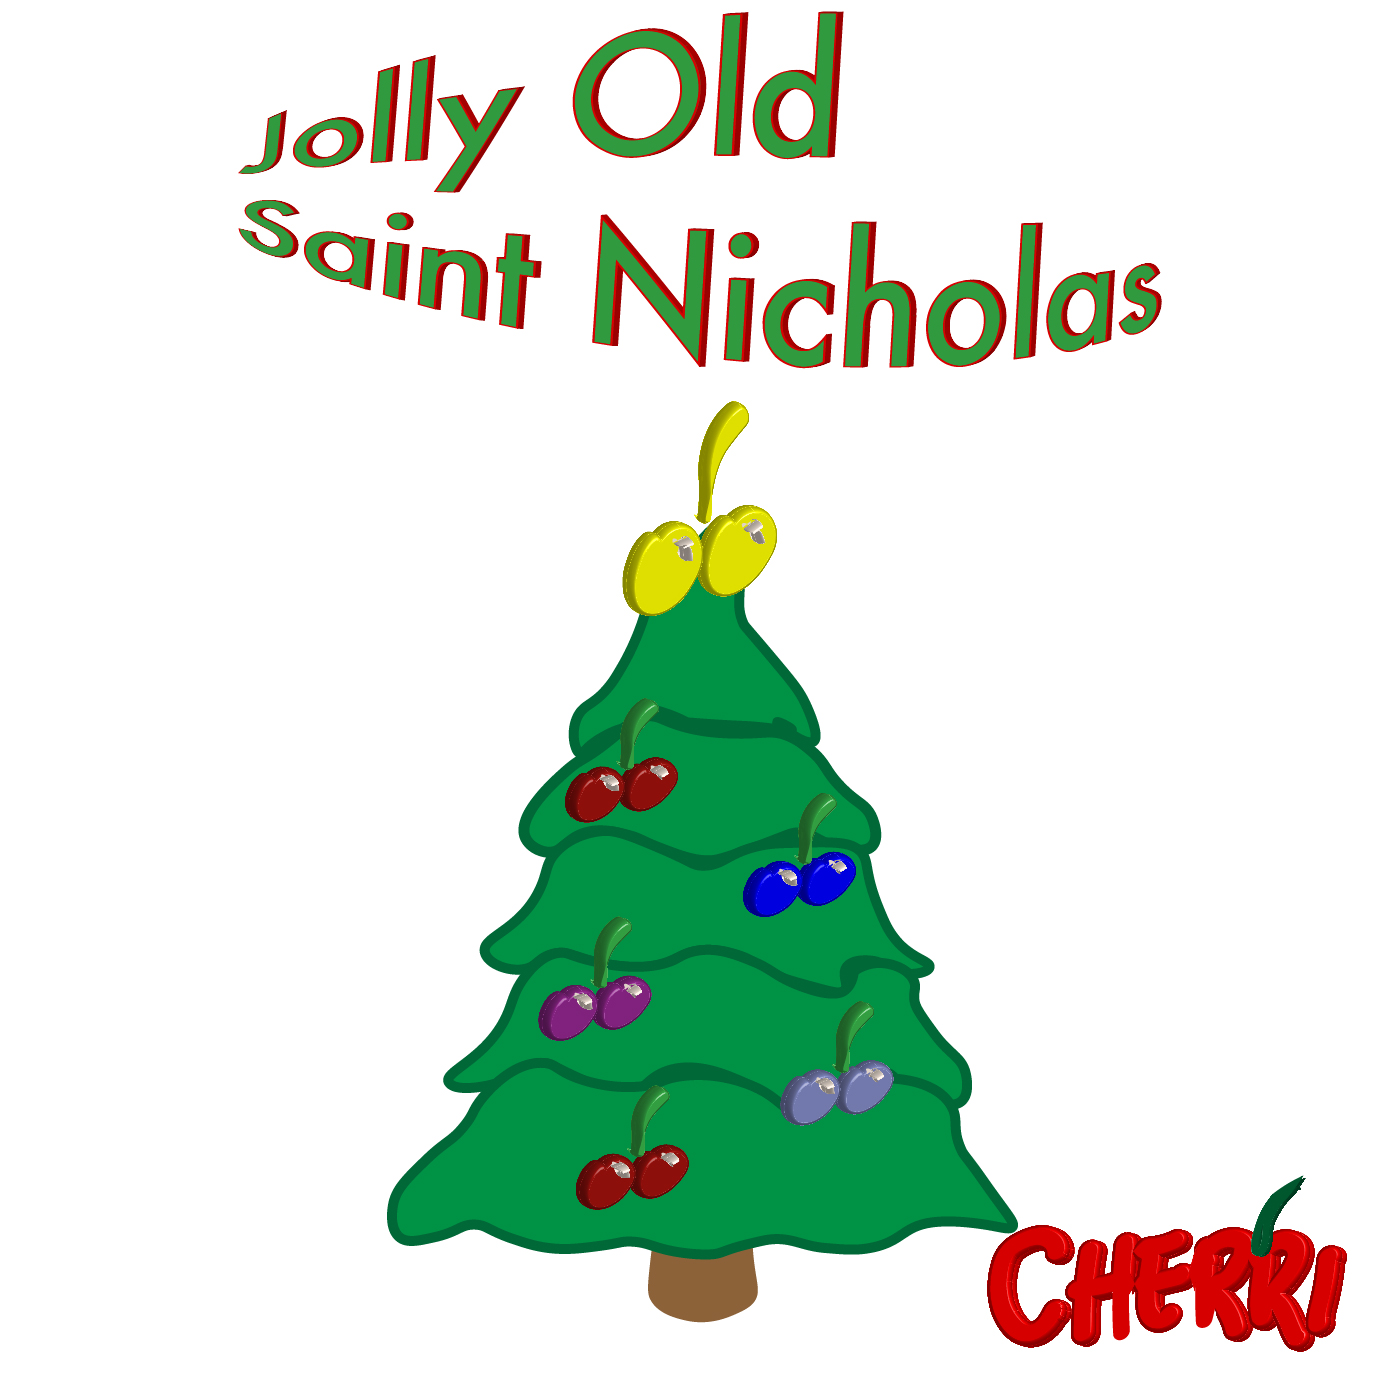 Public Domain: Jolly old St. Nicholas, Lean your ear this way! Don't you tell a single soul, What I'm going to say; Christmas Eve is coming soon, Now, you dear old man, Whisper what you'll bring to me: Tell me if you can. What it's gonna be, Santa. Underneath the tree, Santa. What it's gonna be, Santa. Leave this year for me. What it's gonna be Santa. Underneath the tree Santa. What it's gonna be Santa. Leave this year for me. When the clock is striking twelve, When I'm fast asleep, Down the chimney broad and black, With your pack you'll creep. All the stockings you will find Hanging in a row; Mine will be the shortest one, You'll be sure to know. What it's gonna be, Santa. Underneath the tree, Santa. What it's gonna be, Santa. Leave this year for me. What it's gonna be, Santa. Underneath the tree, Santa. What it's gonna be, Santa. Leave this year for me.   Read more: Christmas Song - Jolly Old St. Nicholas Lyrics | MetroLyrics